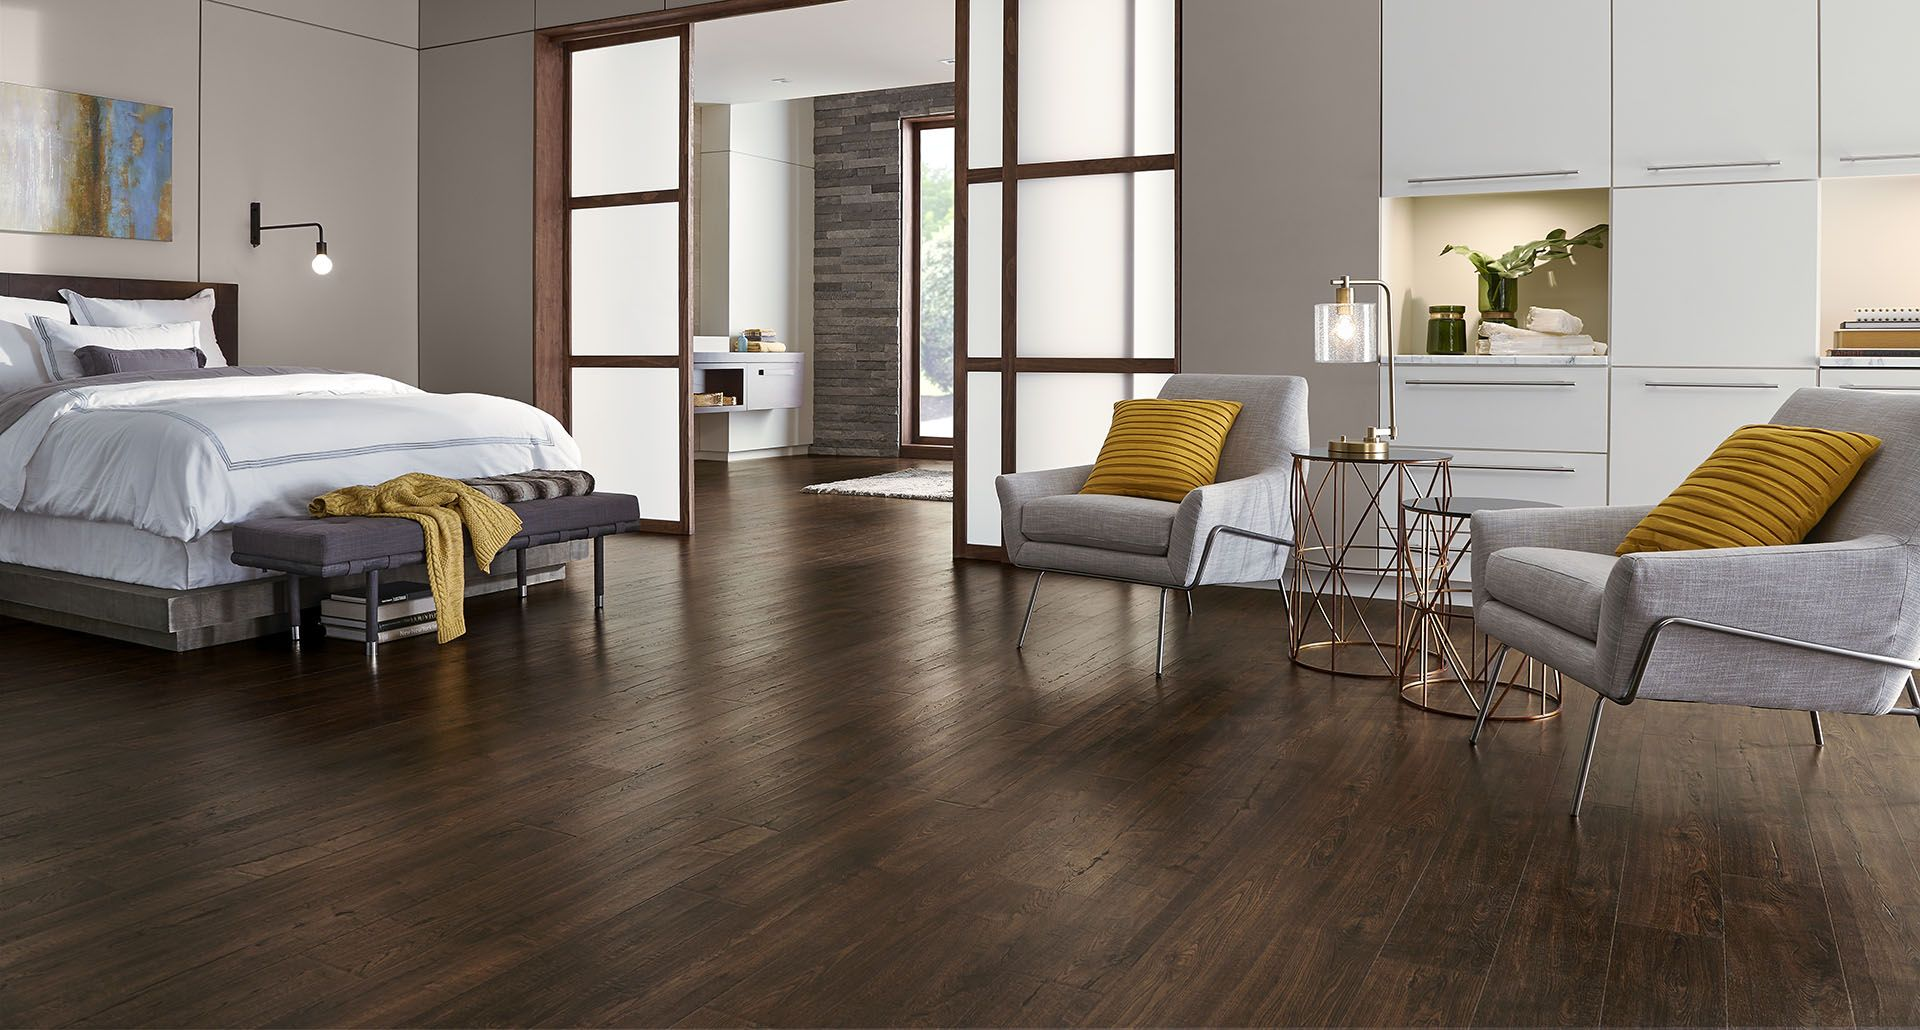 Java Sed Oak Pergo Outlast Laminate Flooring Creates A Clean And Spacious Look With Modern Grey